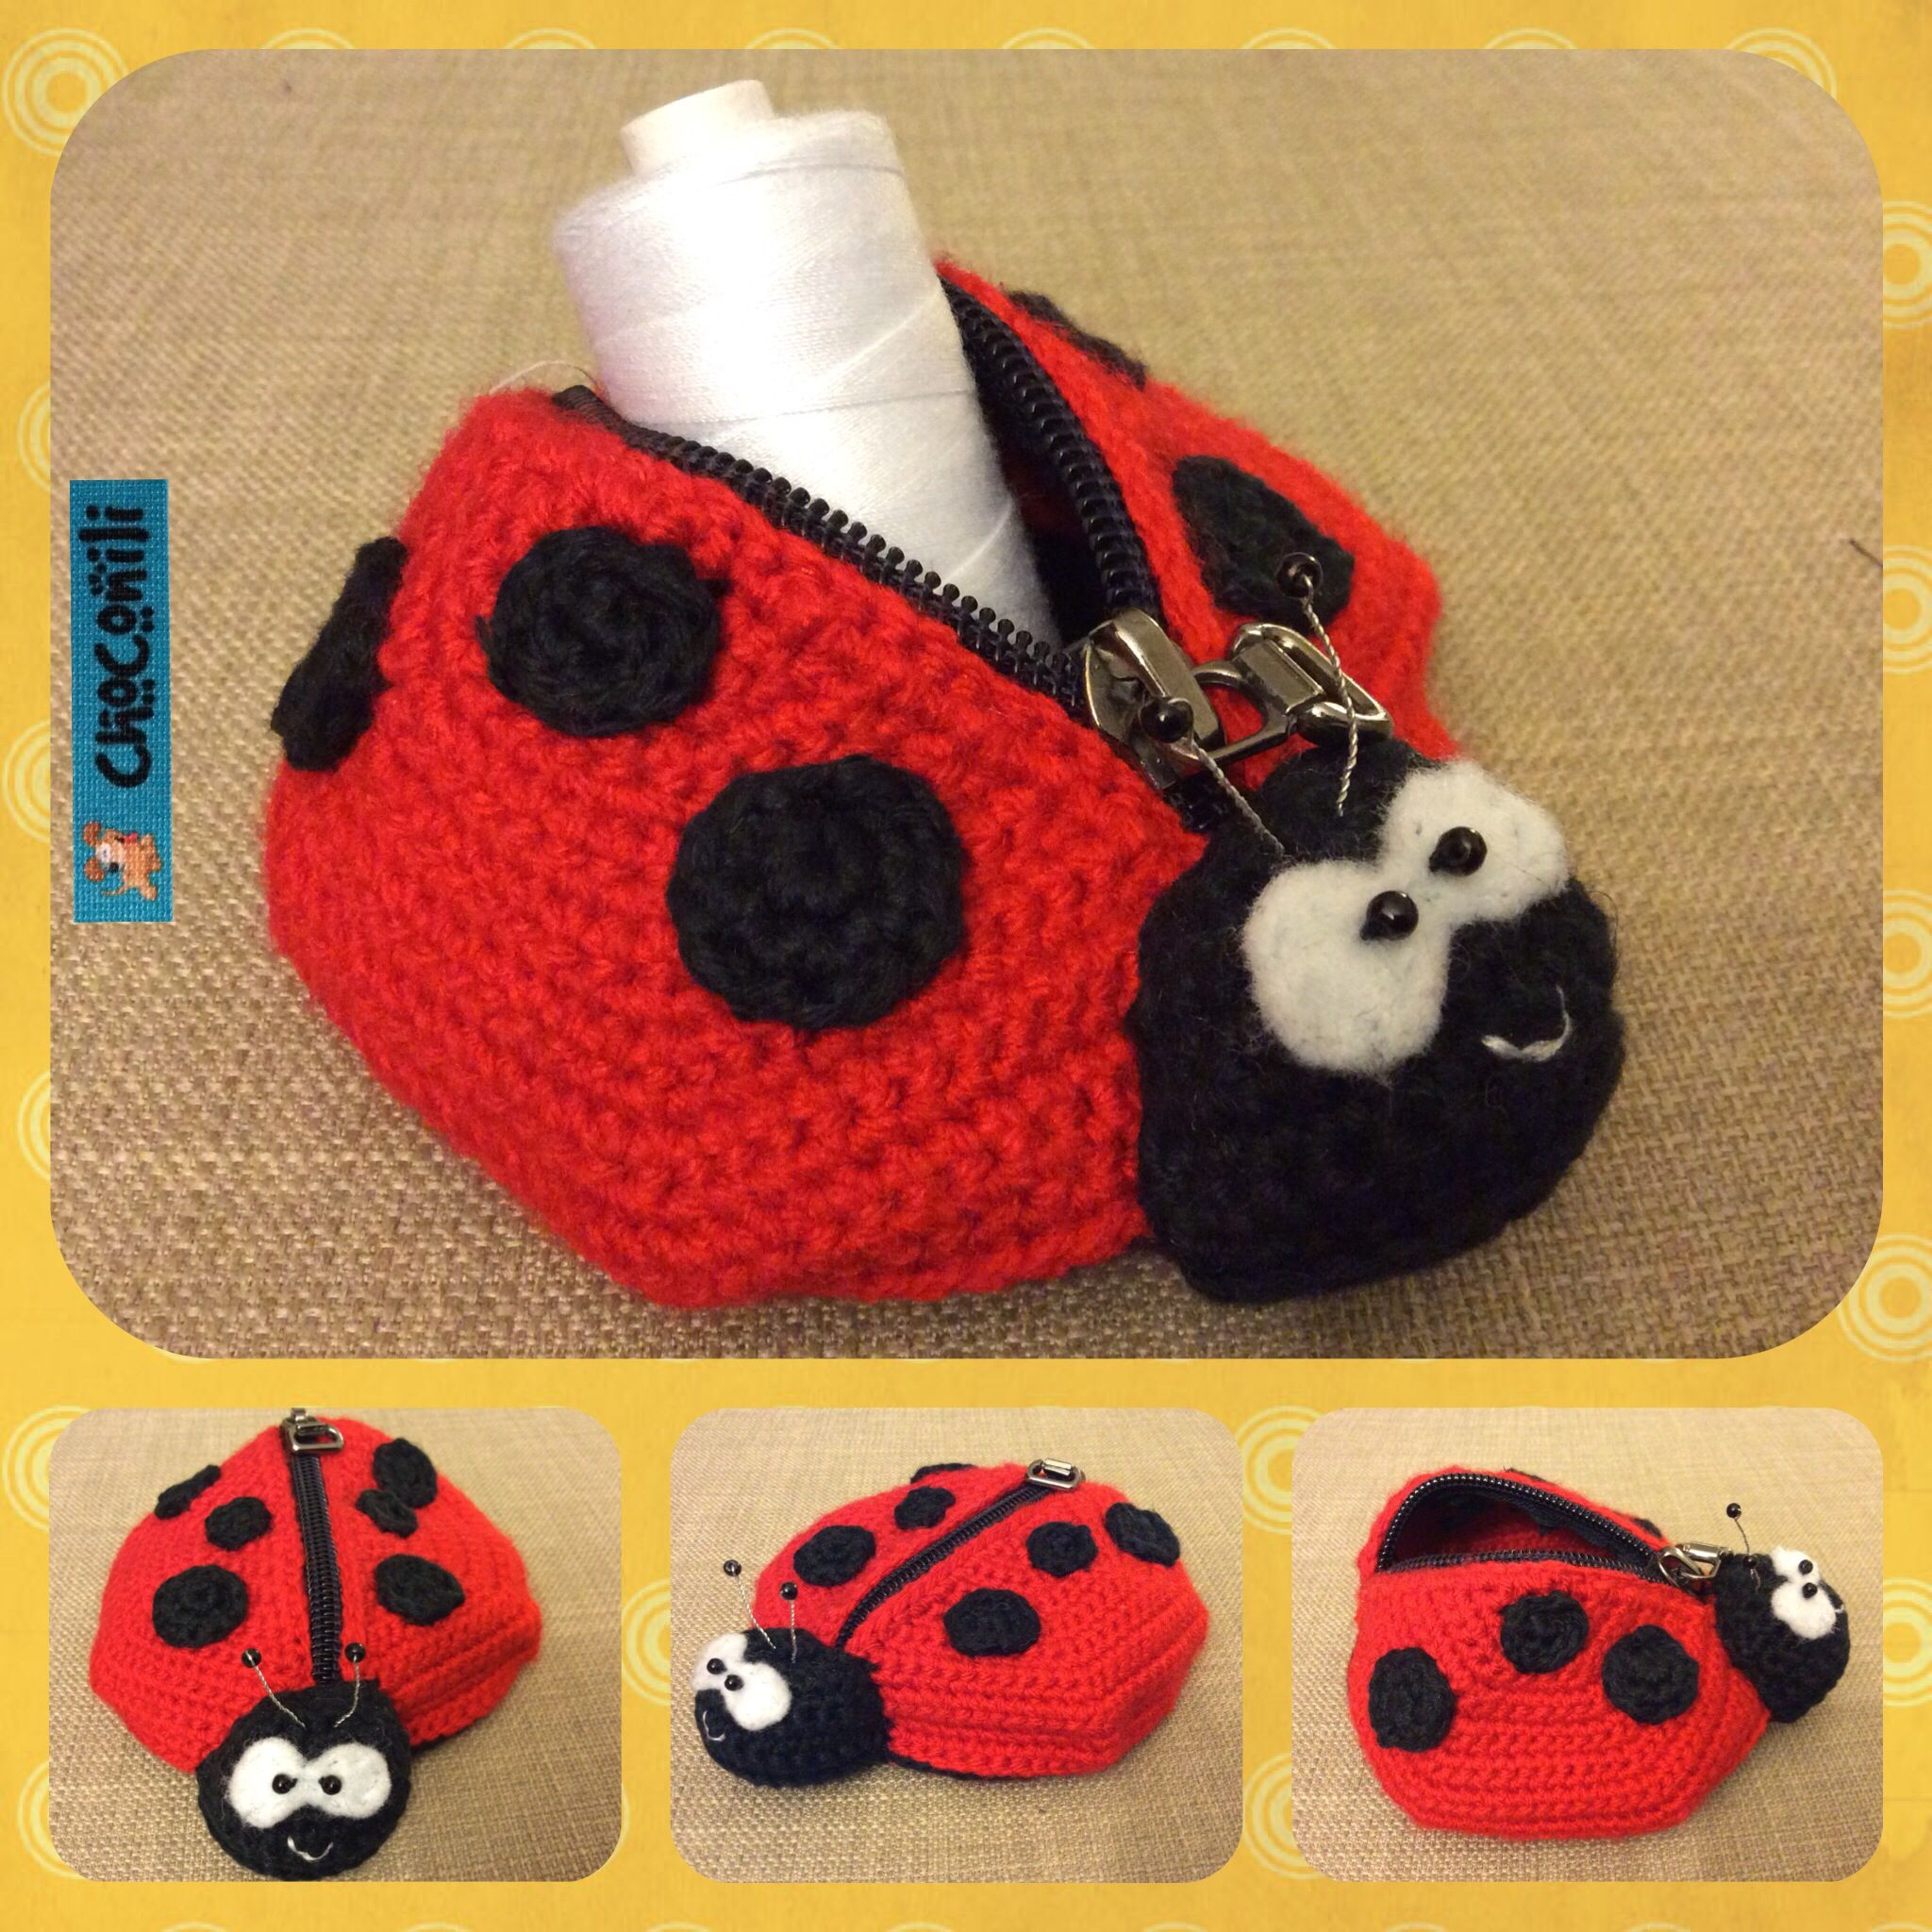 Free crochet pattern in German for ladybug coin purse | ganchillo ...